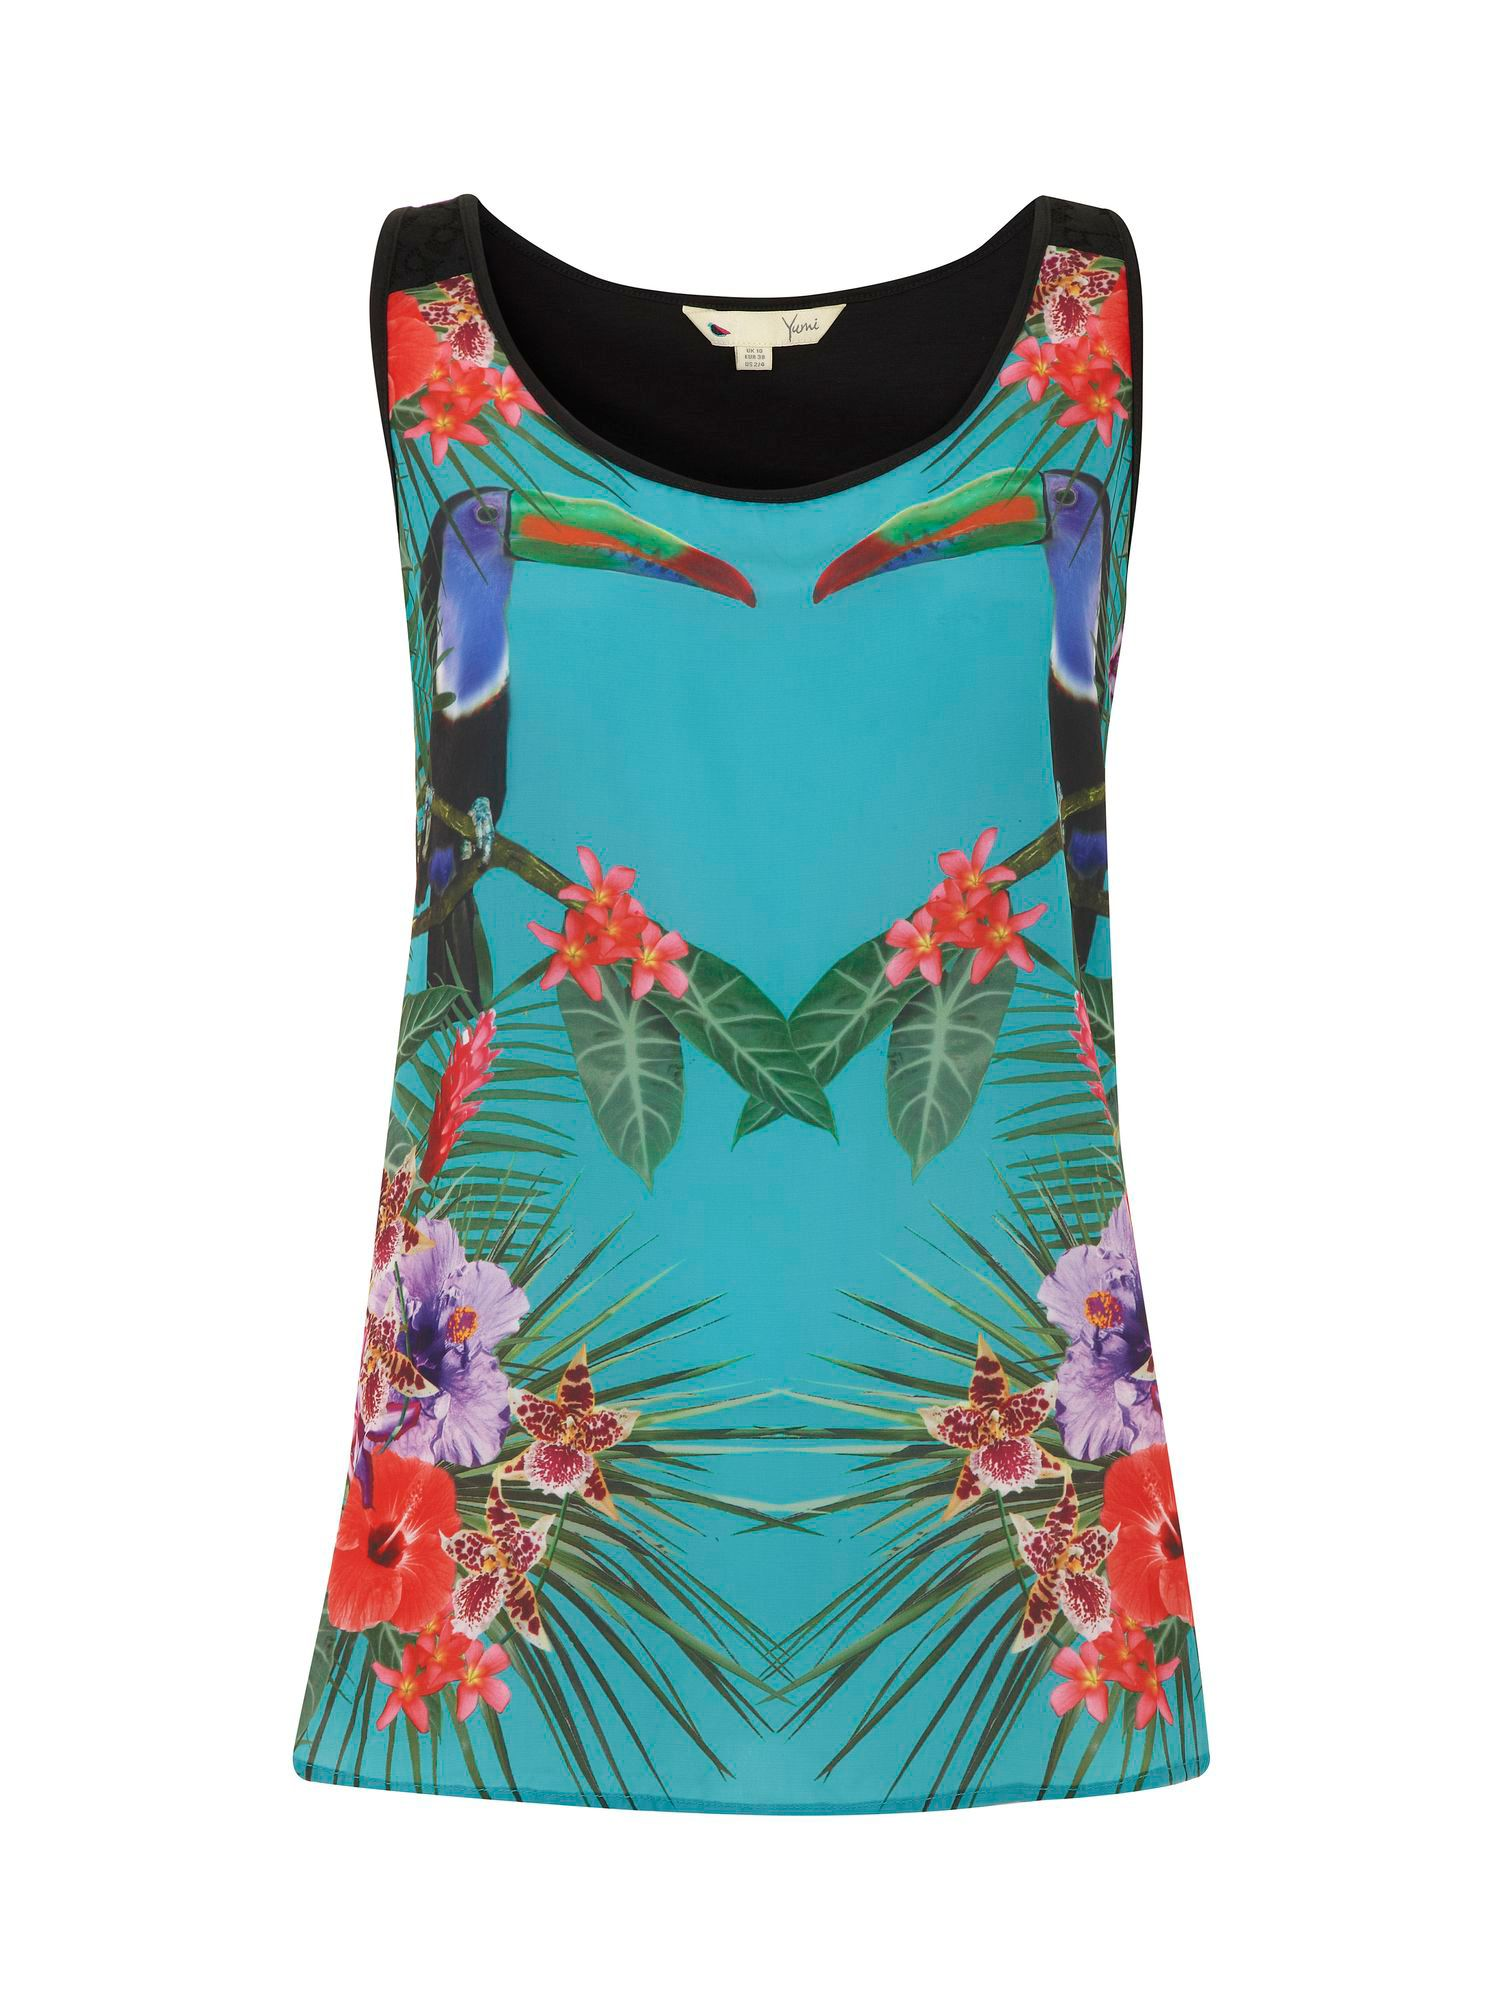 Mirrored toucan print vest